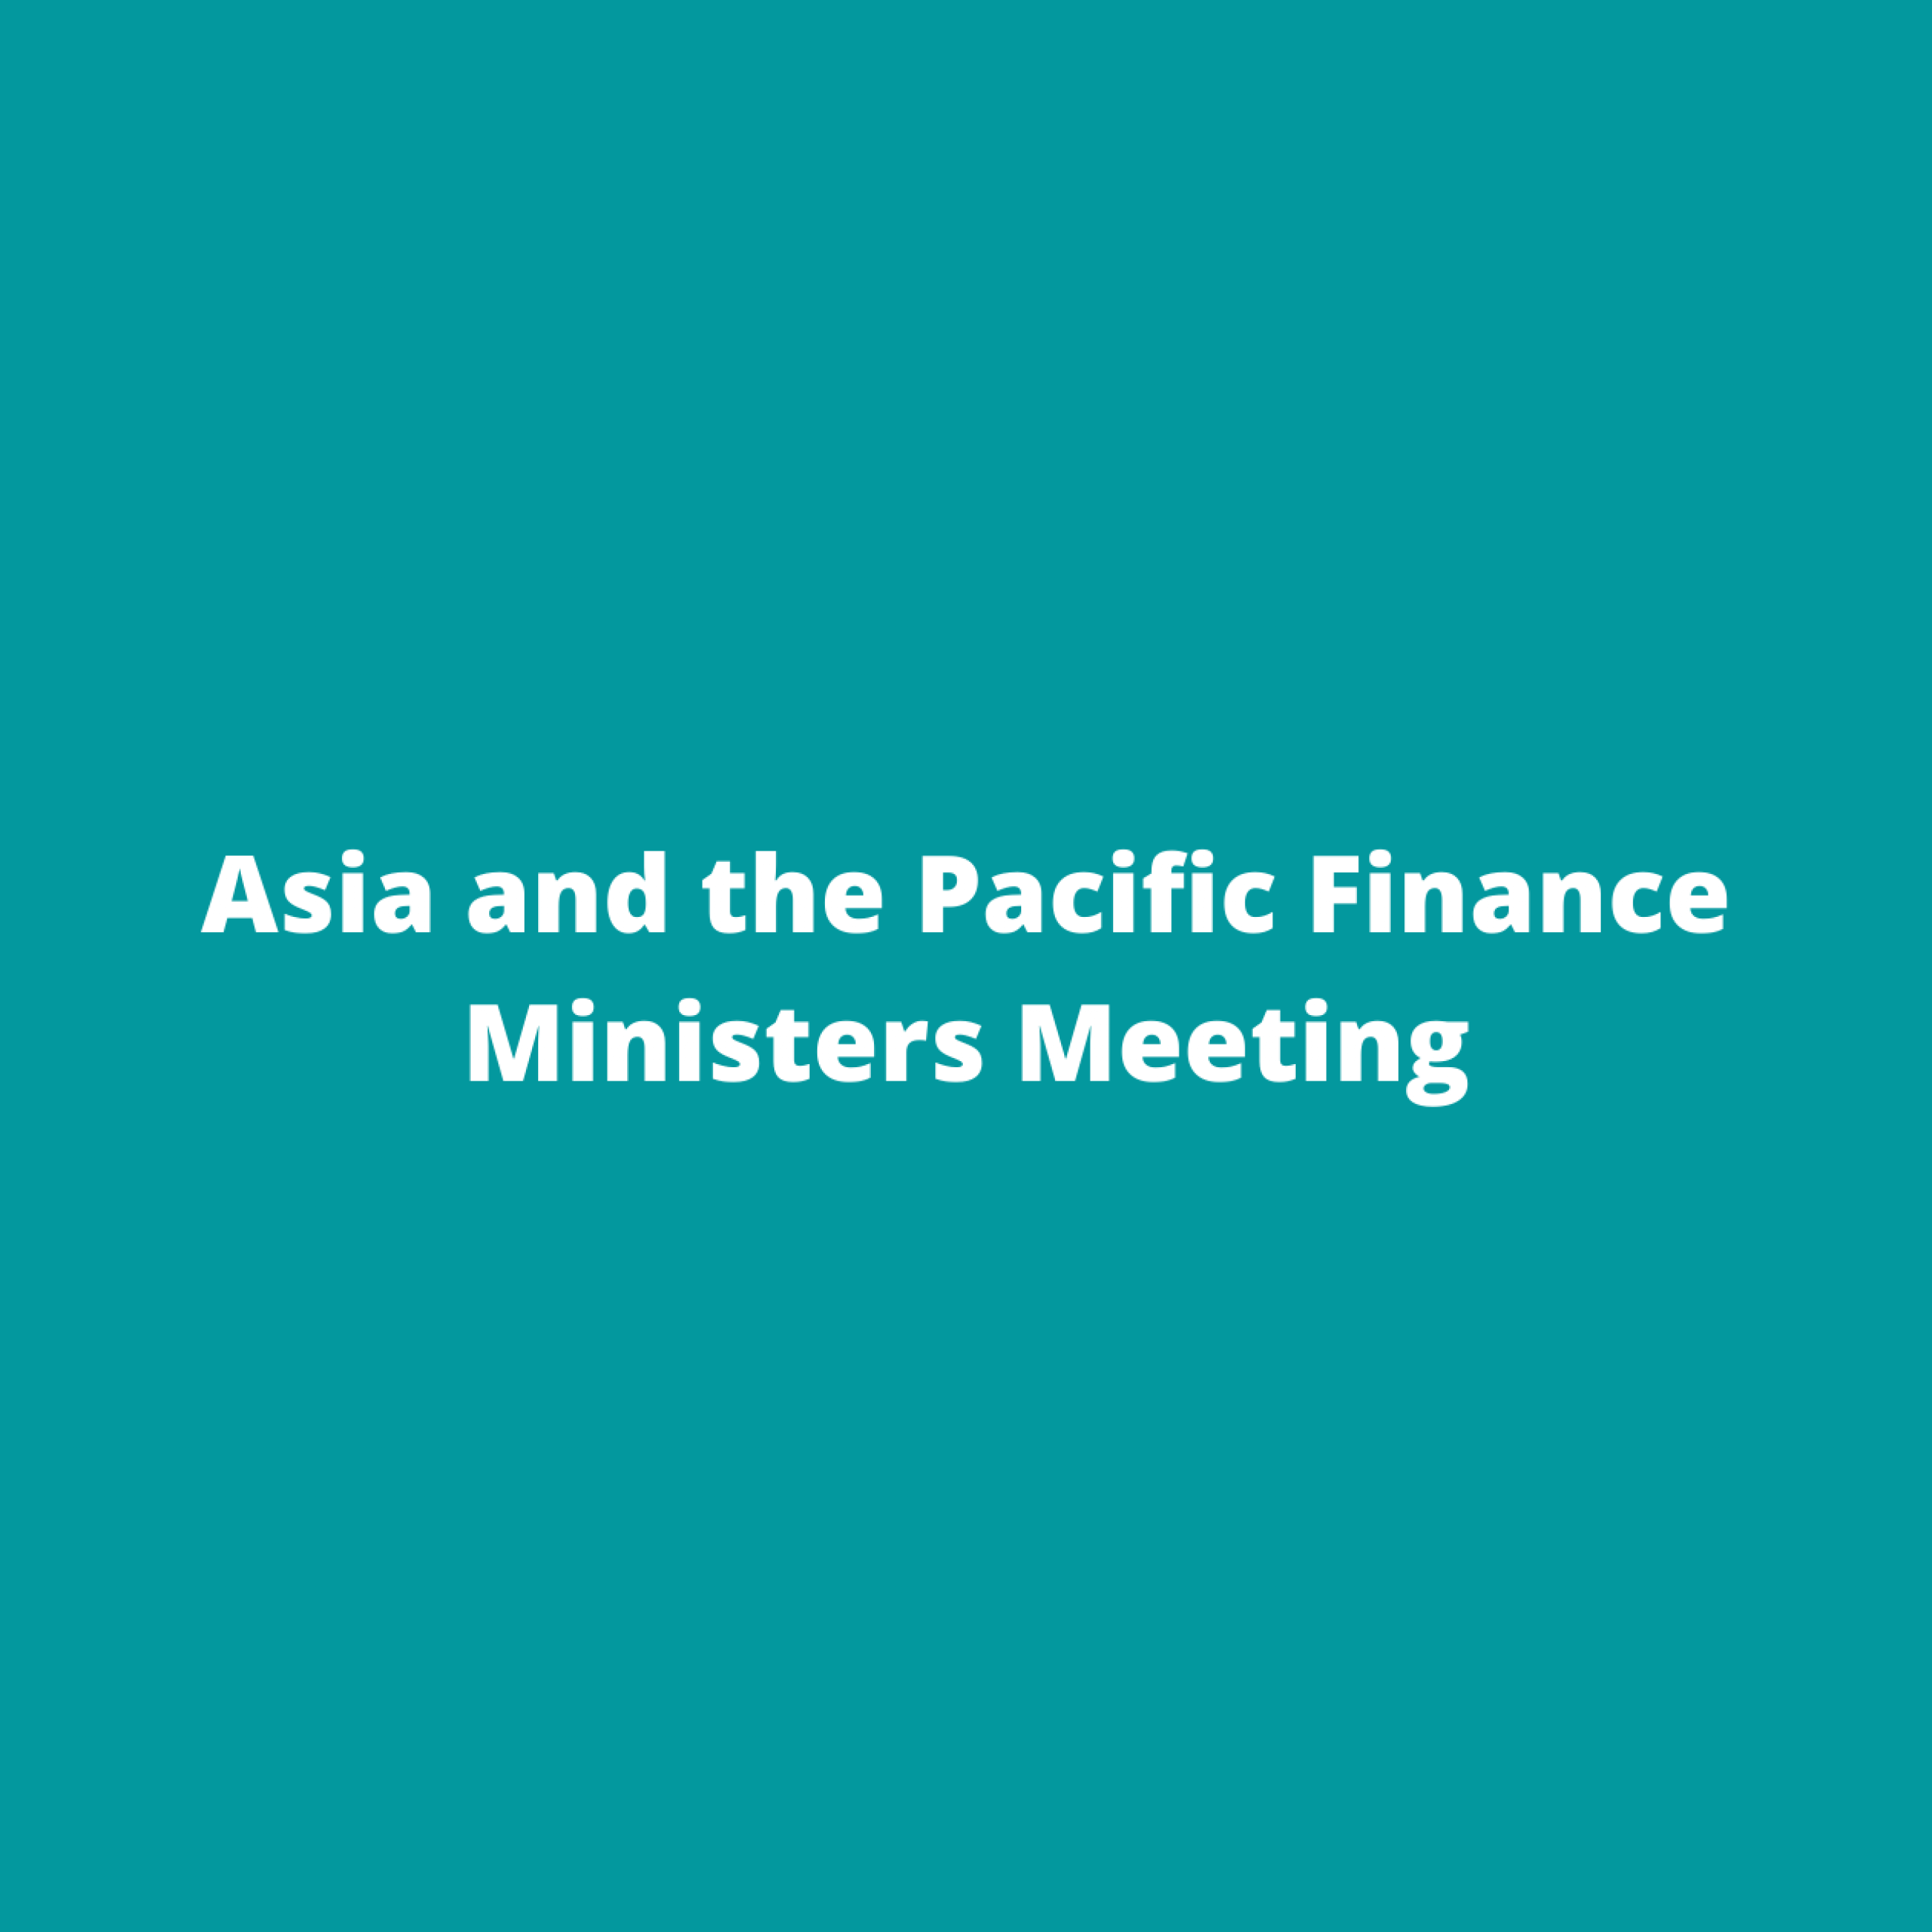 Asia and the Pacific Finance Ministers Meeting